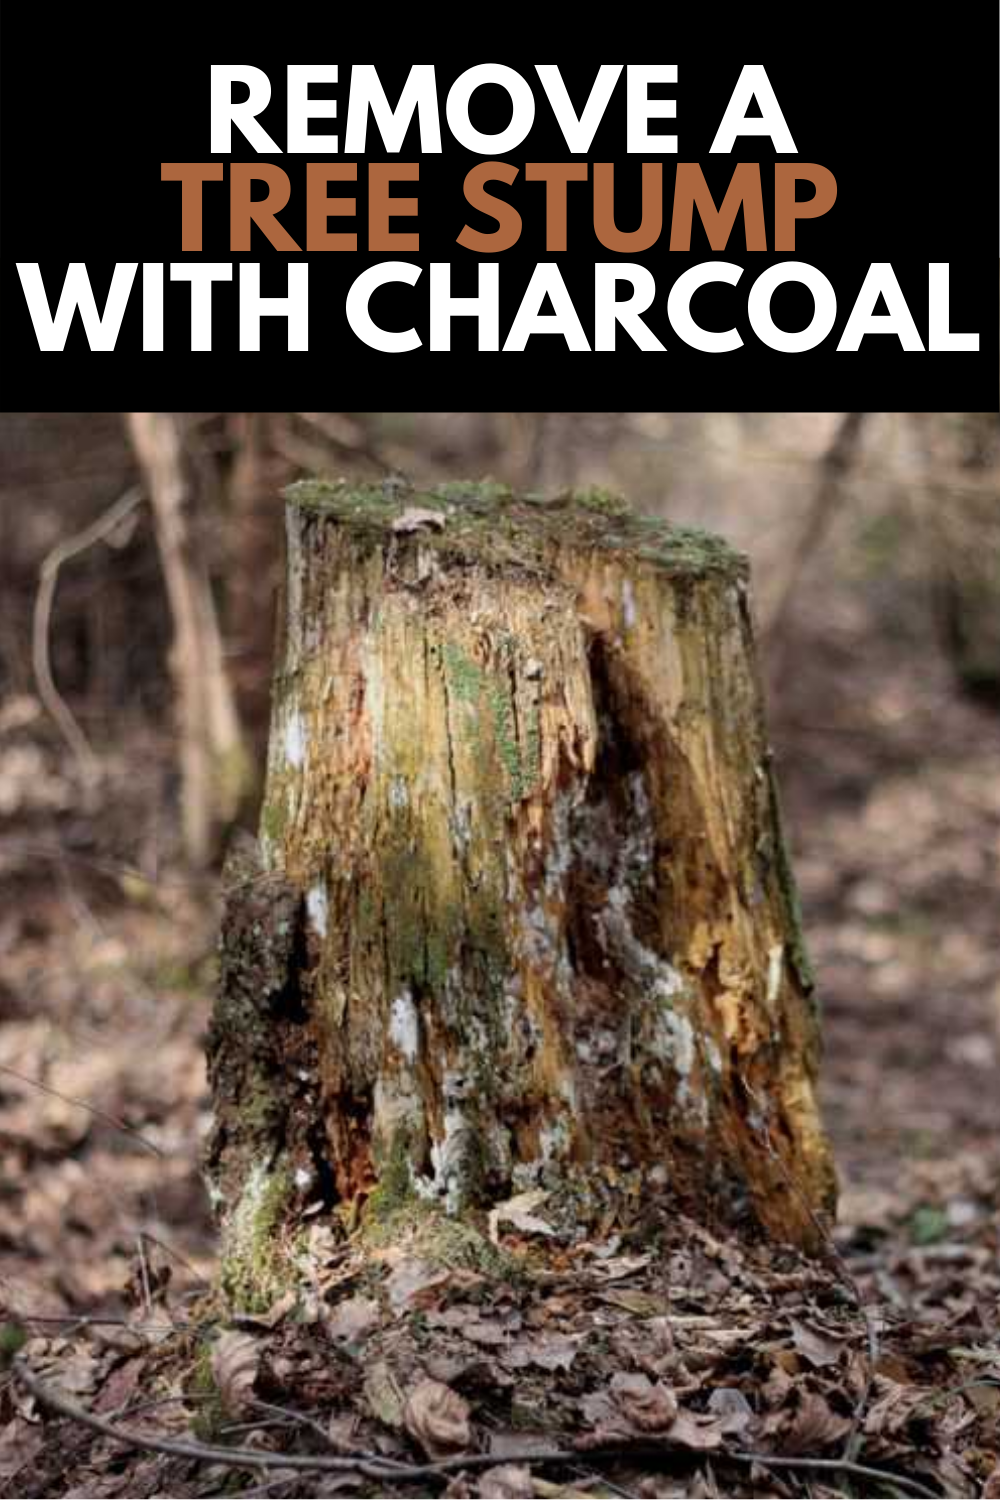 How To Remove A Tree Stump With Charcoal Comprehensive Guide 2021 Tree Stump Tree Stump Removal